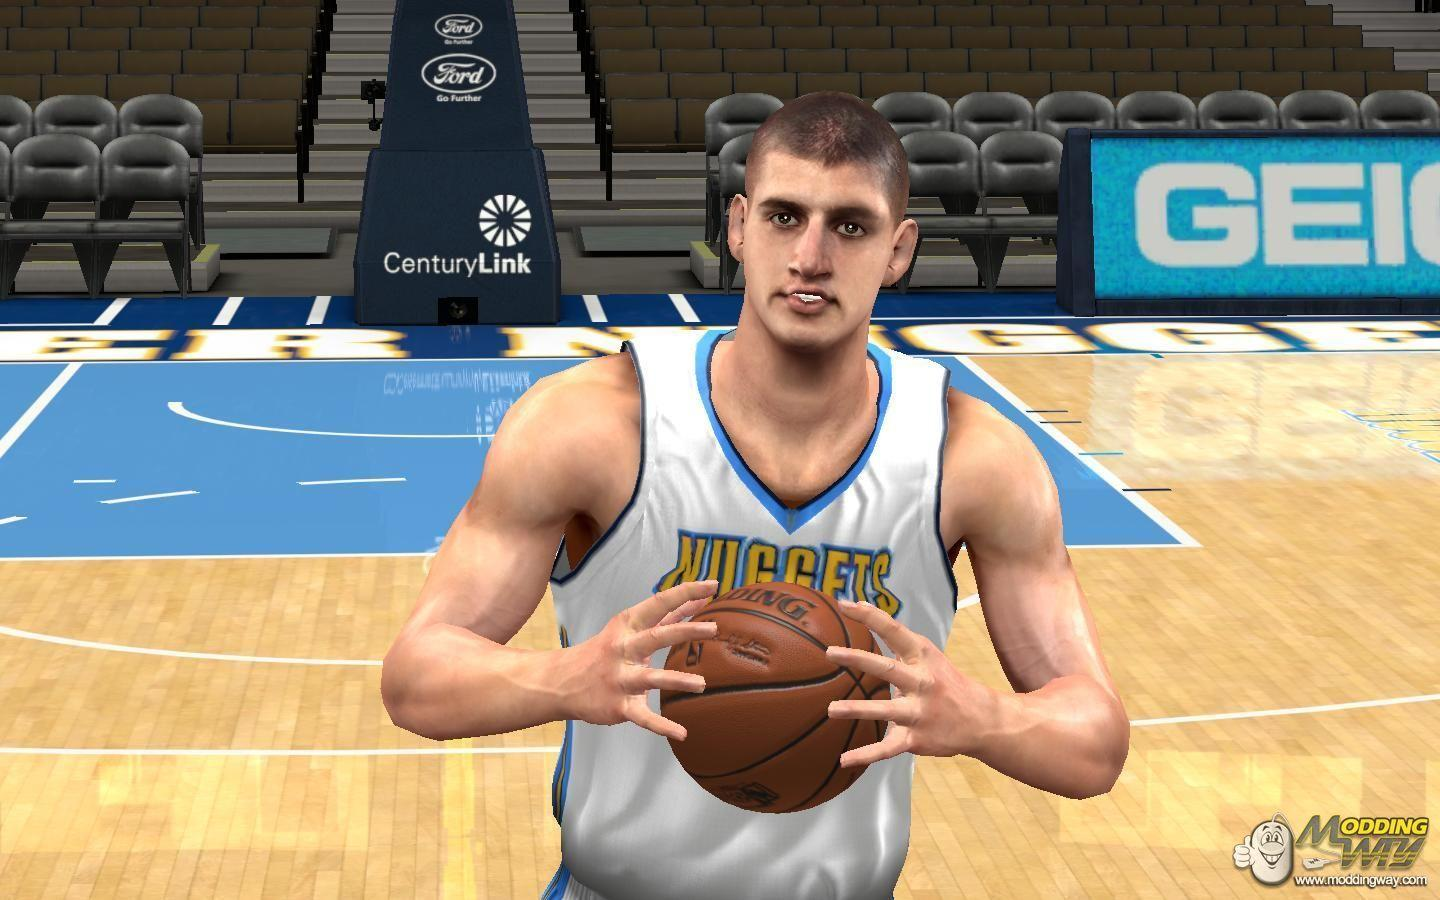 Nikola jokic real cyberface - NBA 2K14